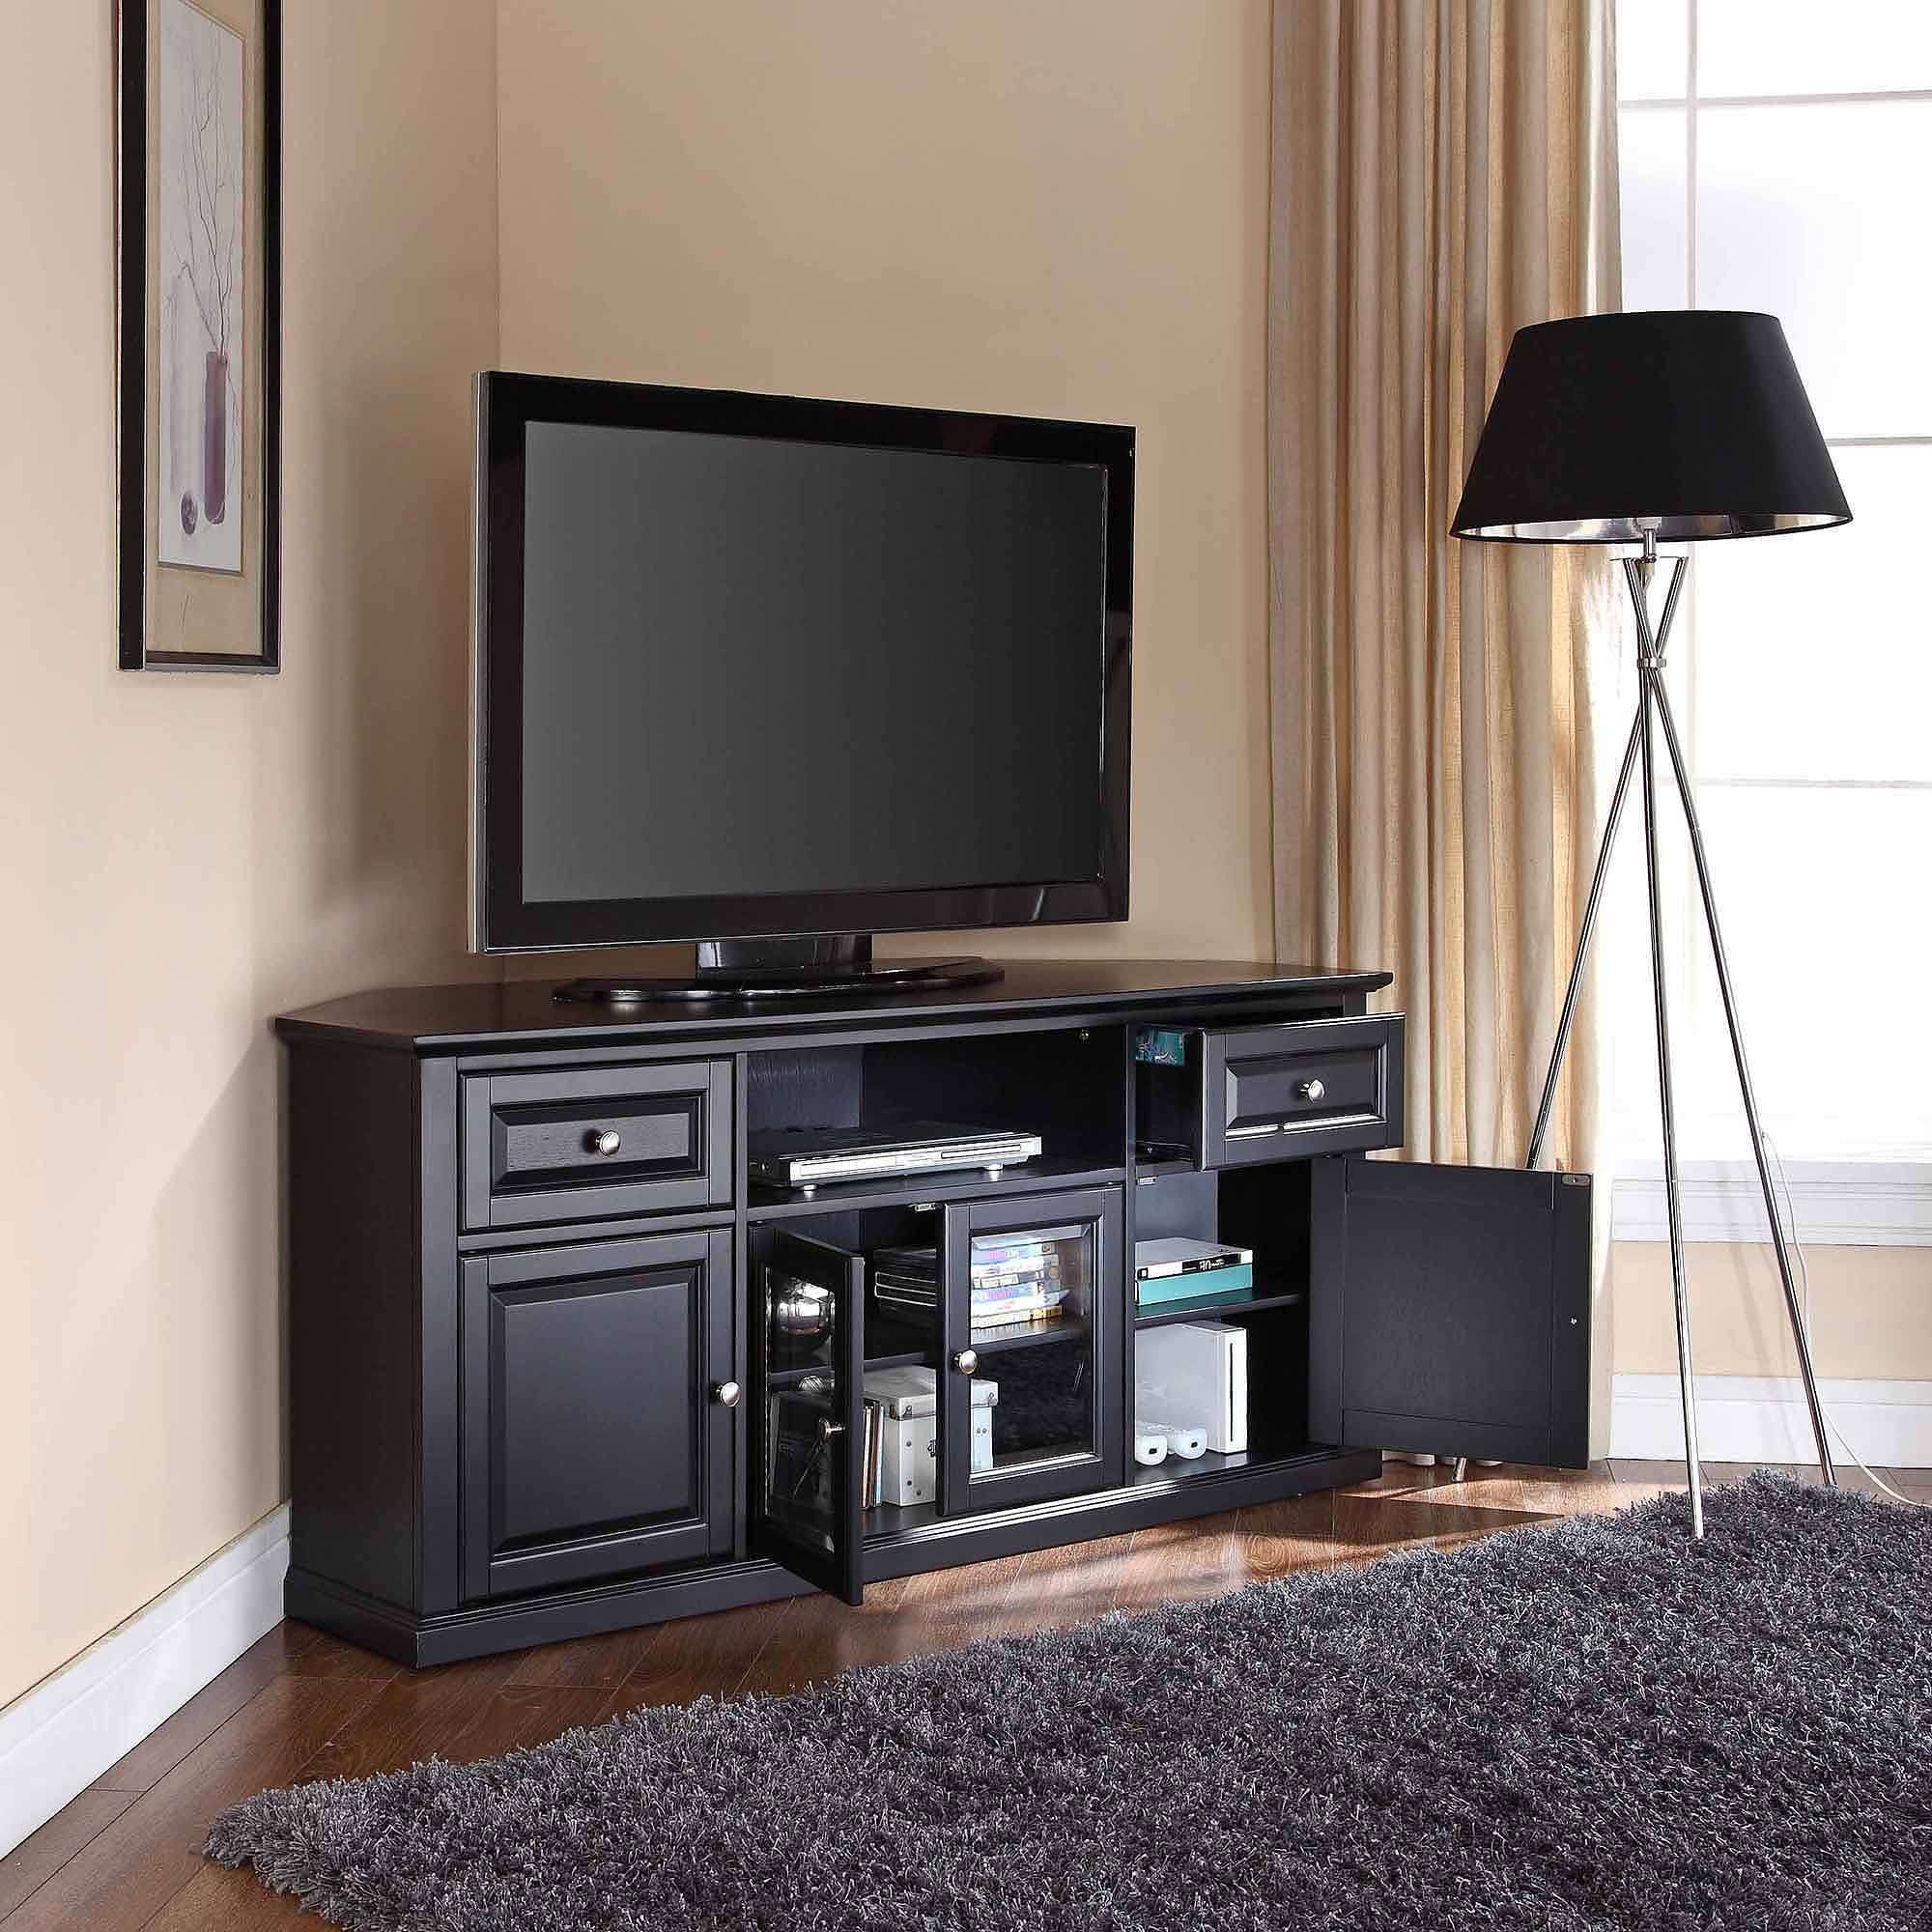 """Crosley Furniture Corner Tv Stand For Tvs Up To 60"""" – Walmart With Corner Tv Stands With Drawers (View 4 of 15)"""